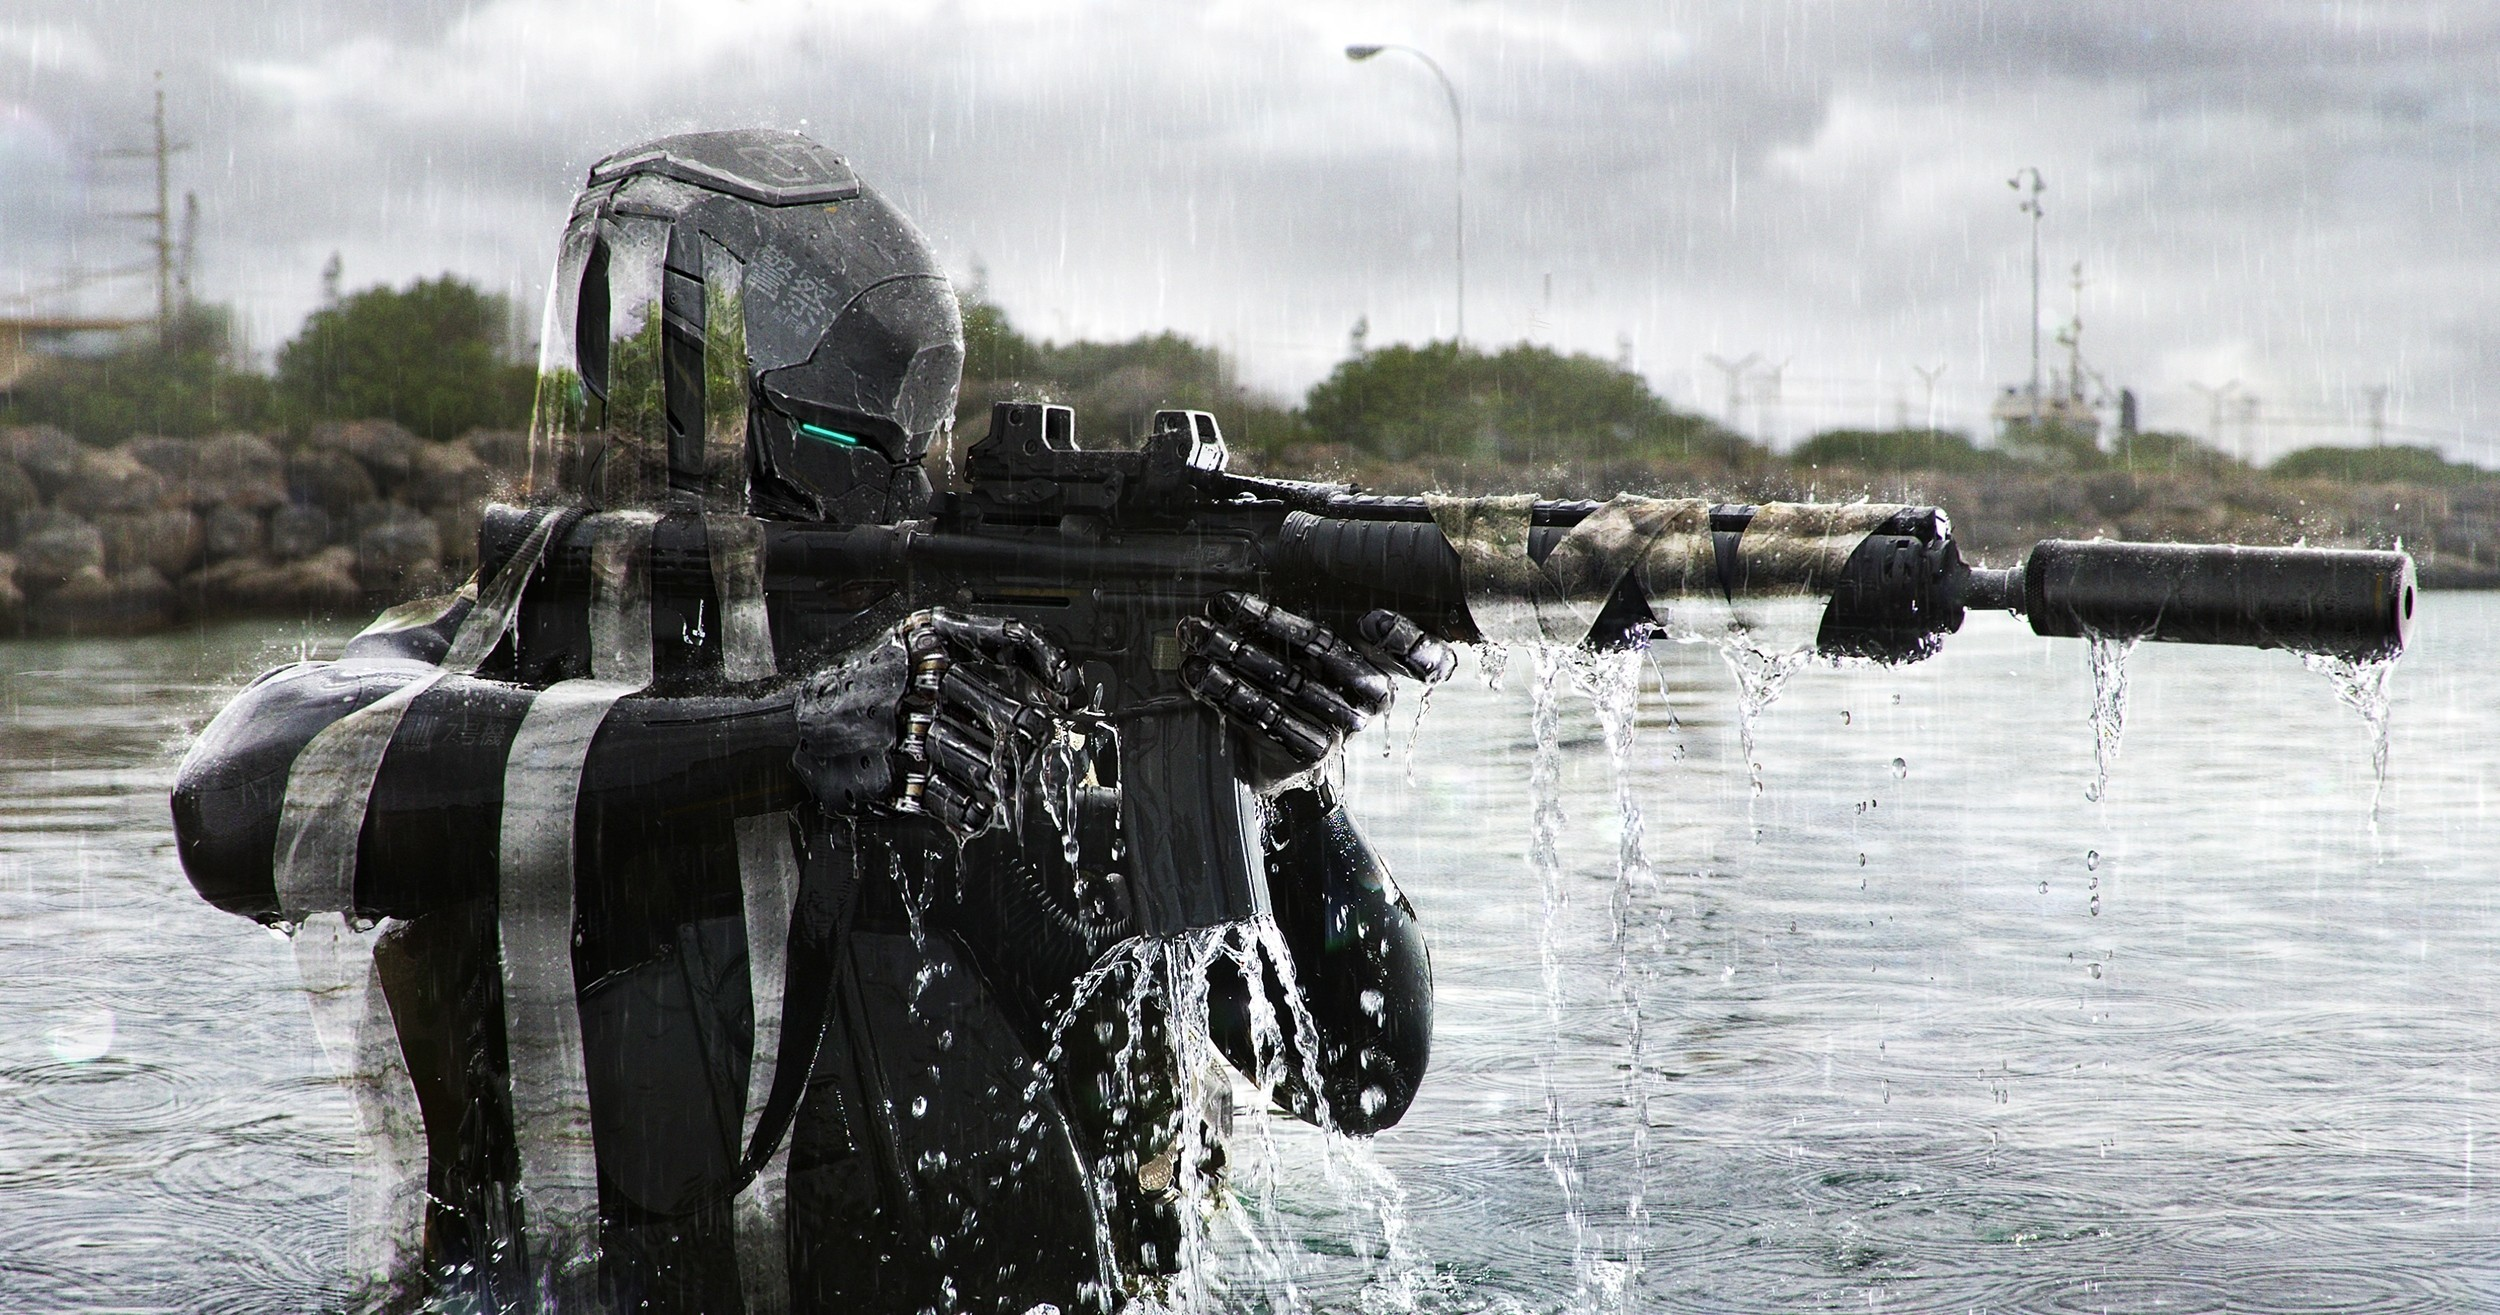 Image: Soldier, robot, aiming, water, river, cyborg, gun, automatic, a silencer, camo, camouflage, invisibility